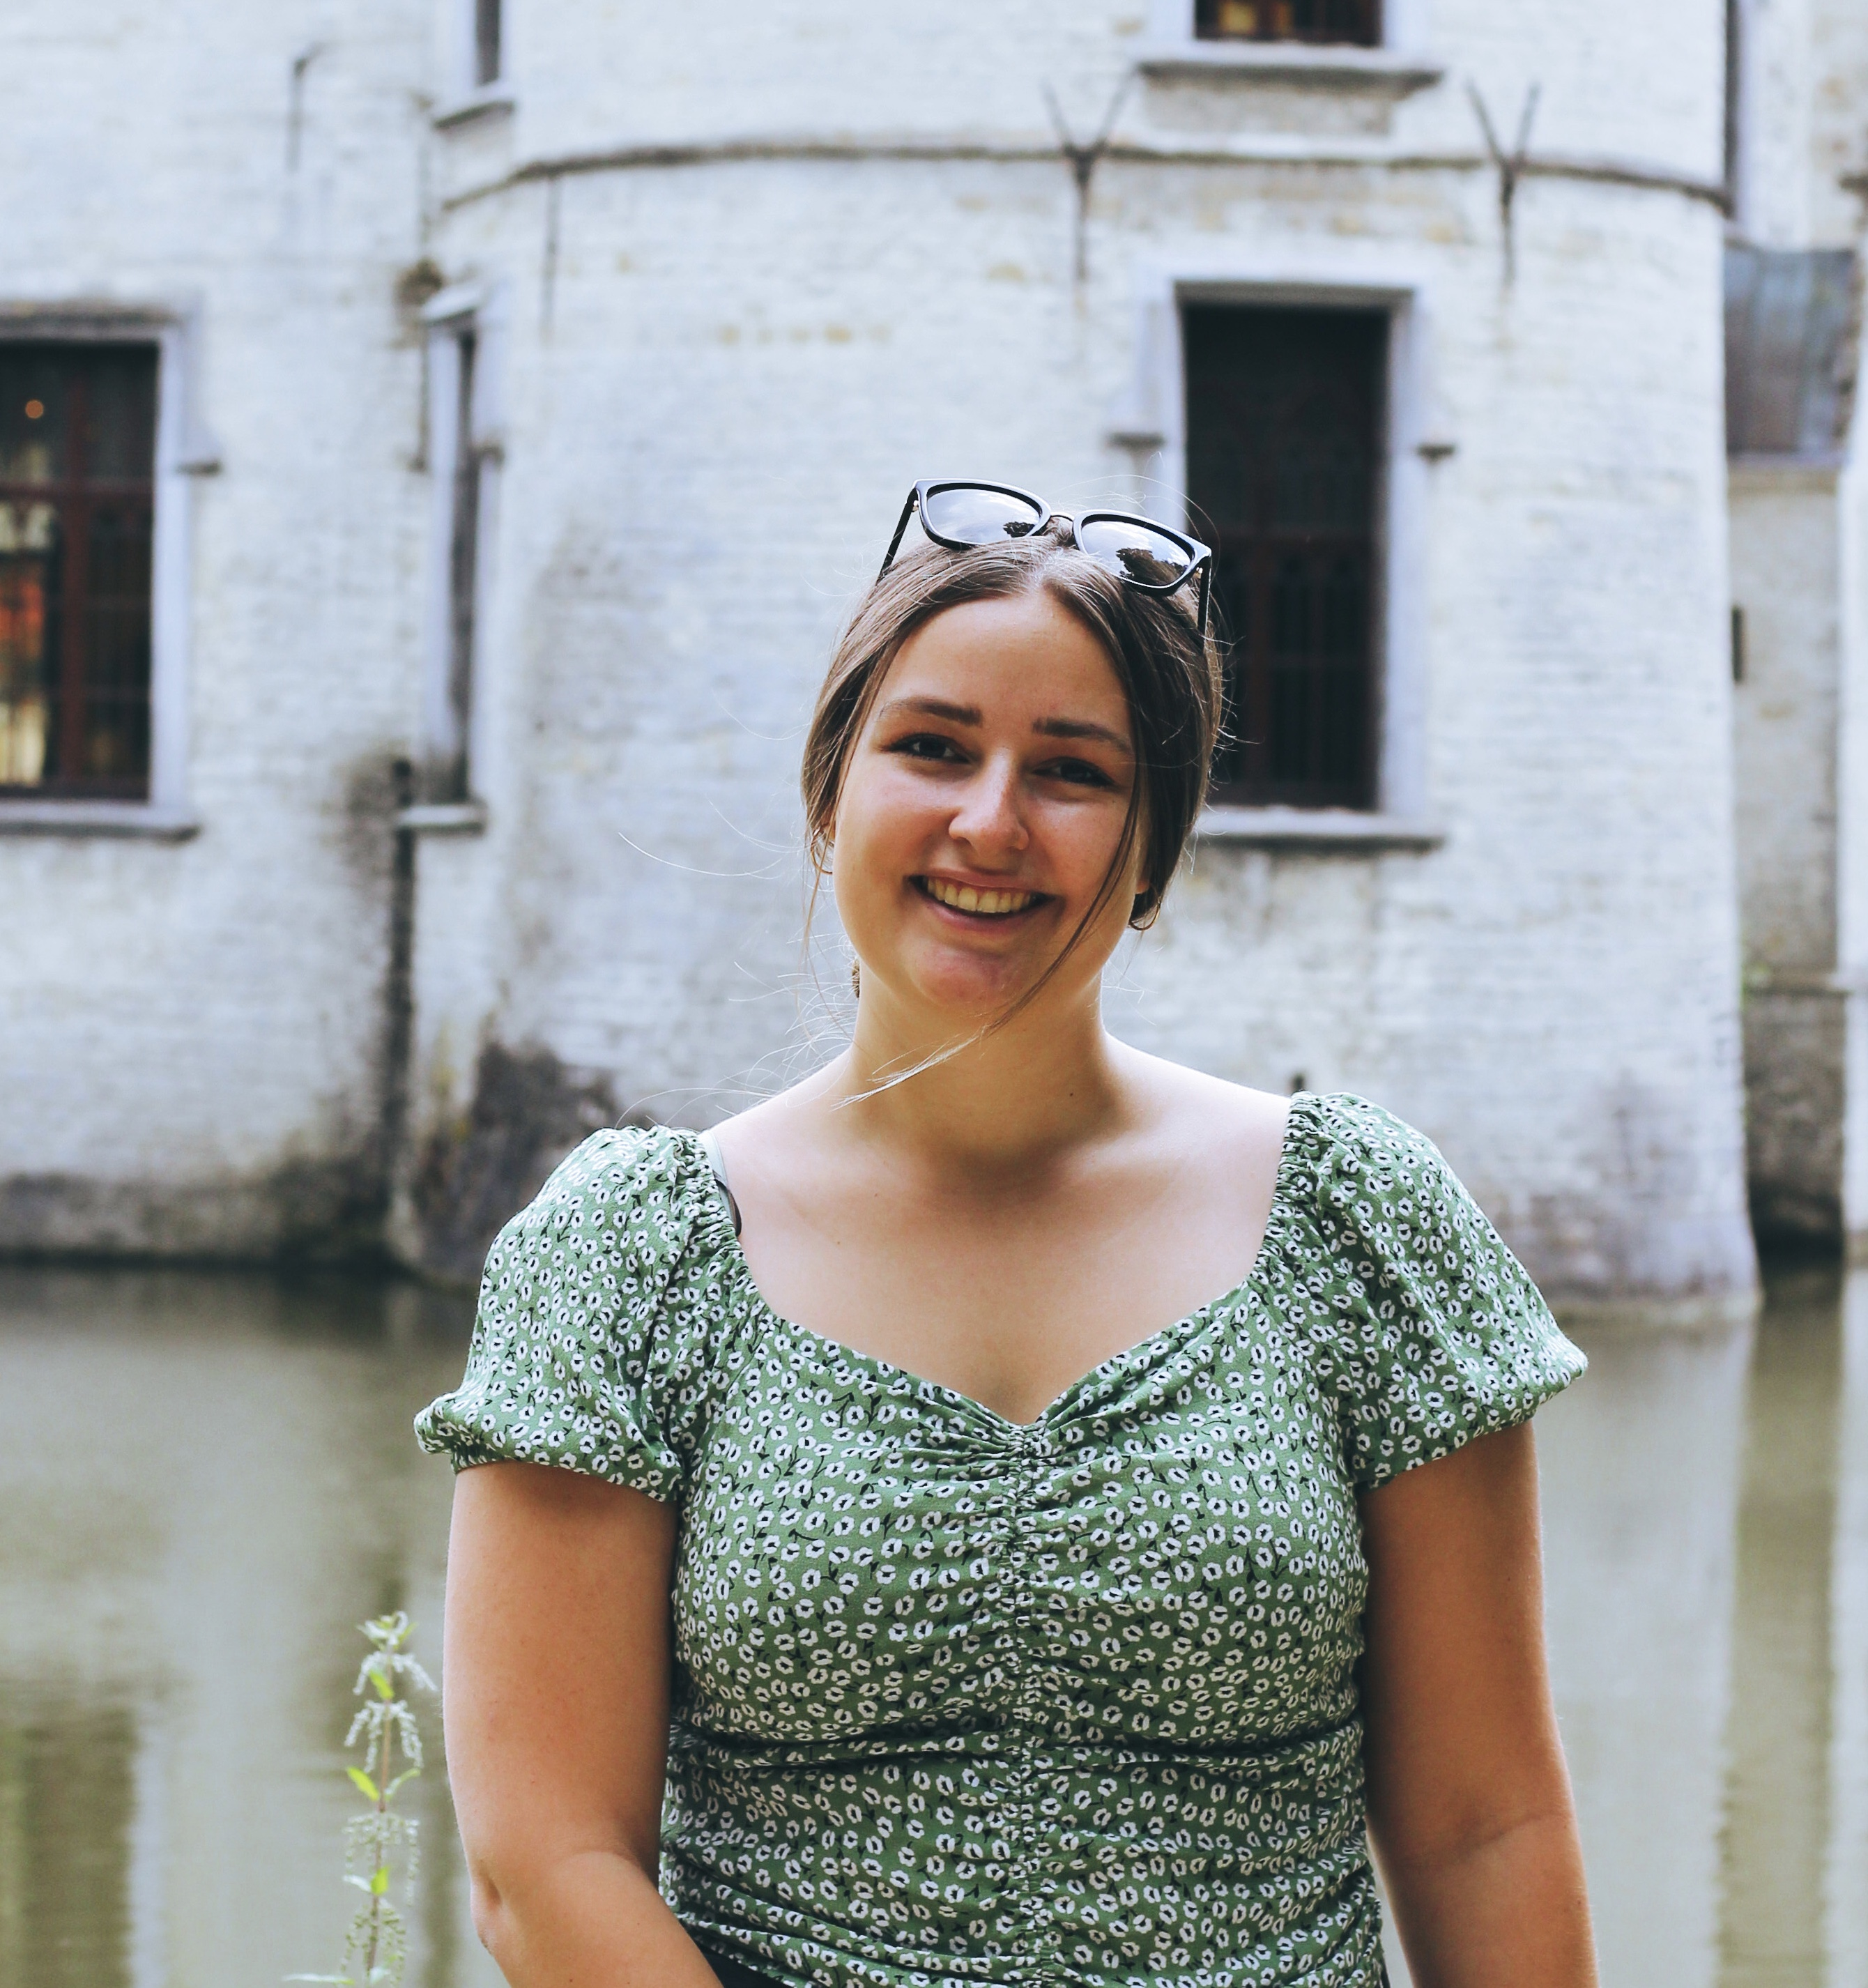 Lisaura is the Belgian based blogger behind travelaimes, which helps young women travel the world.